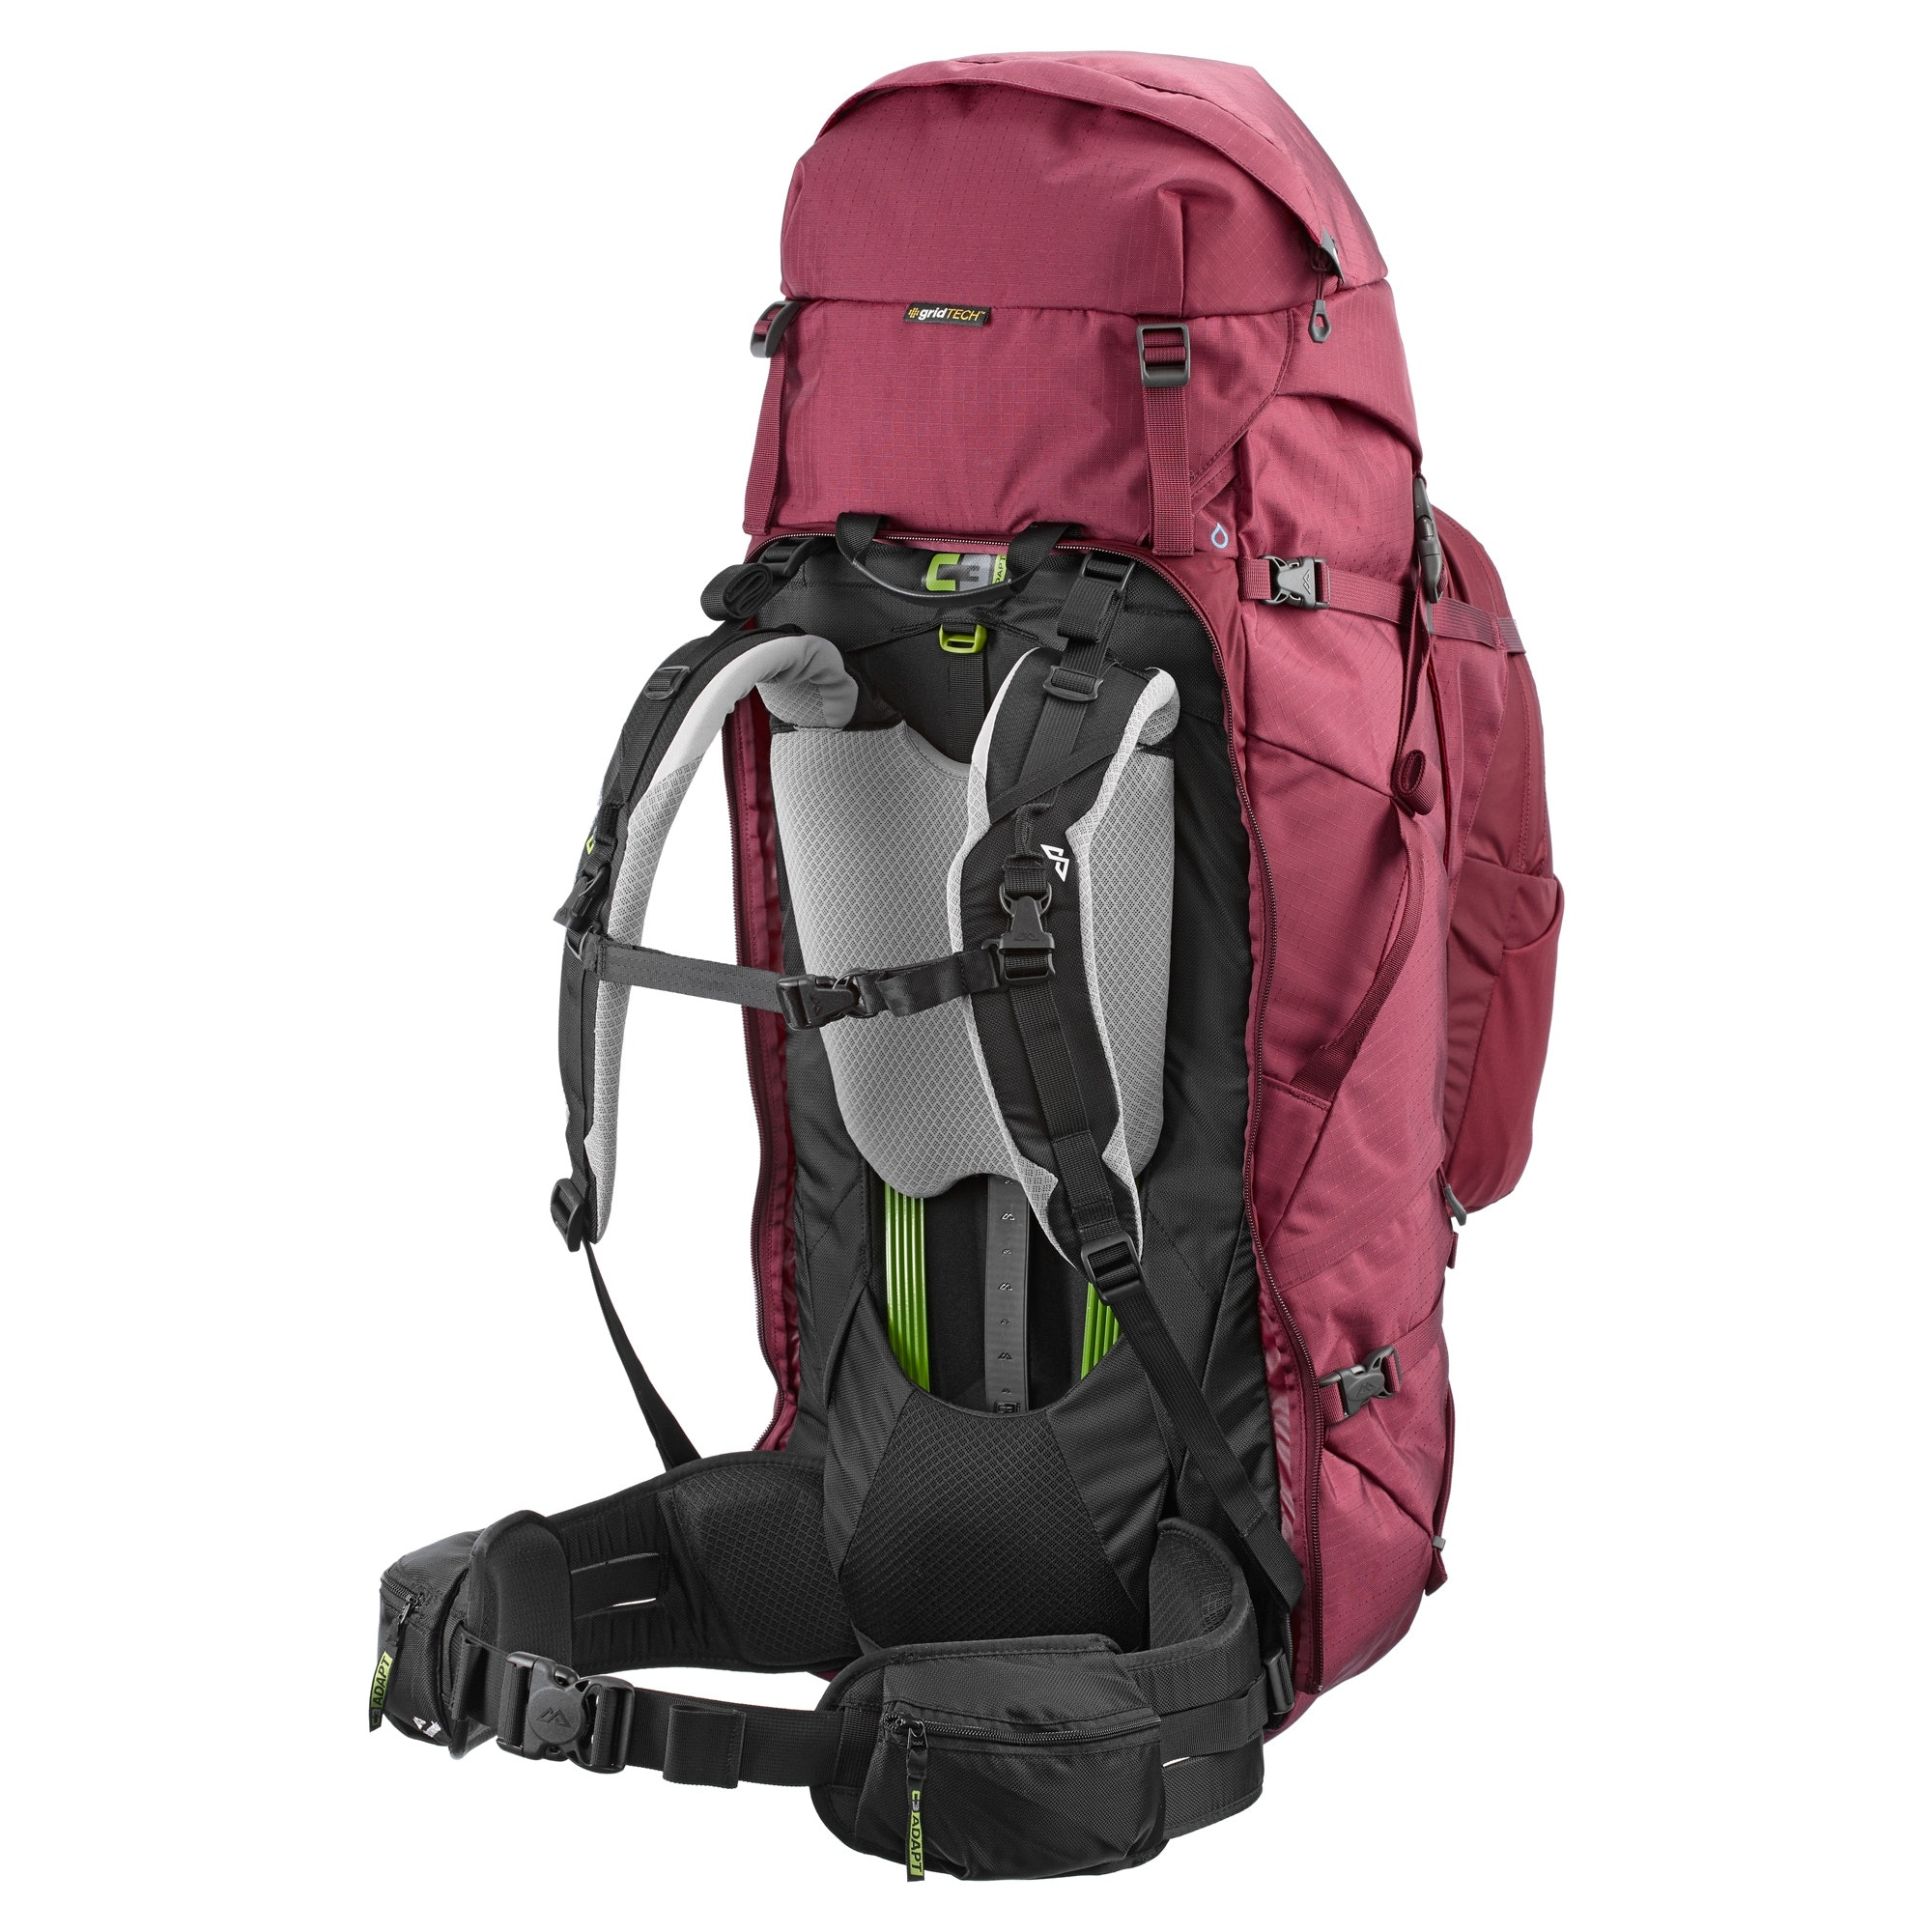 NEW-Kathmandu-Interloper-gridTECH-70L-Hiking-Travel-Backpack-Luggage-with thumbnail 11